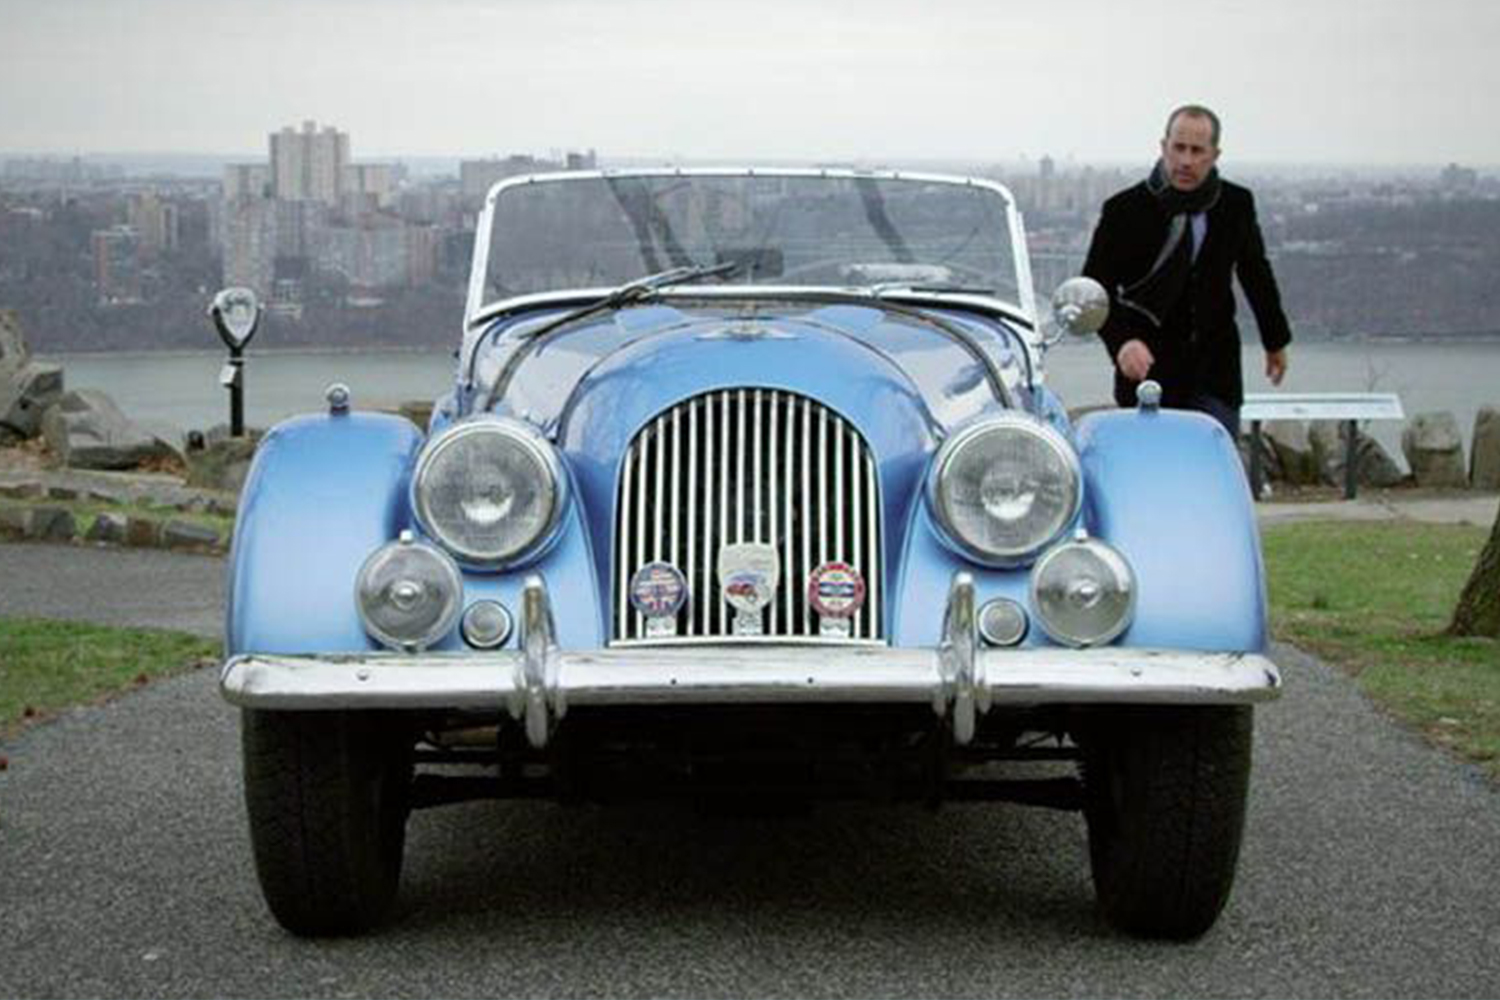 Best Comedians in Cars Getting Coffee 1964 Morgan Plus 4